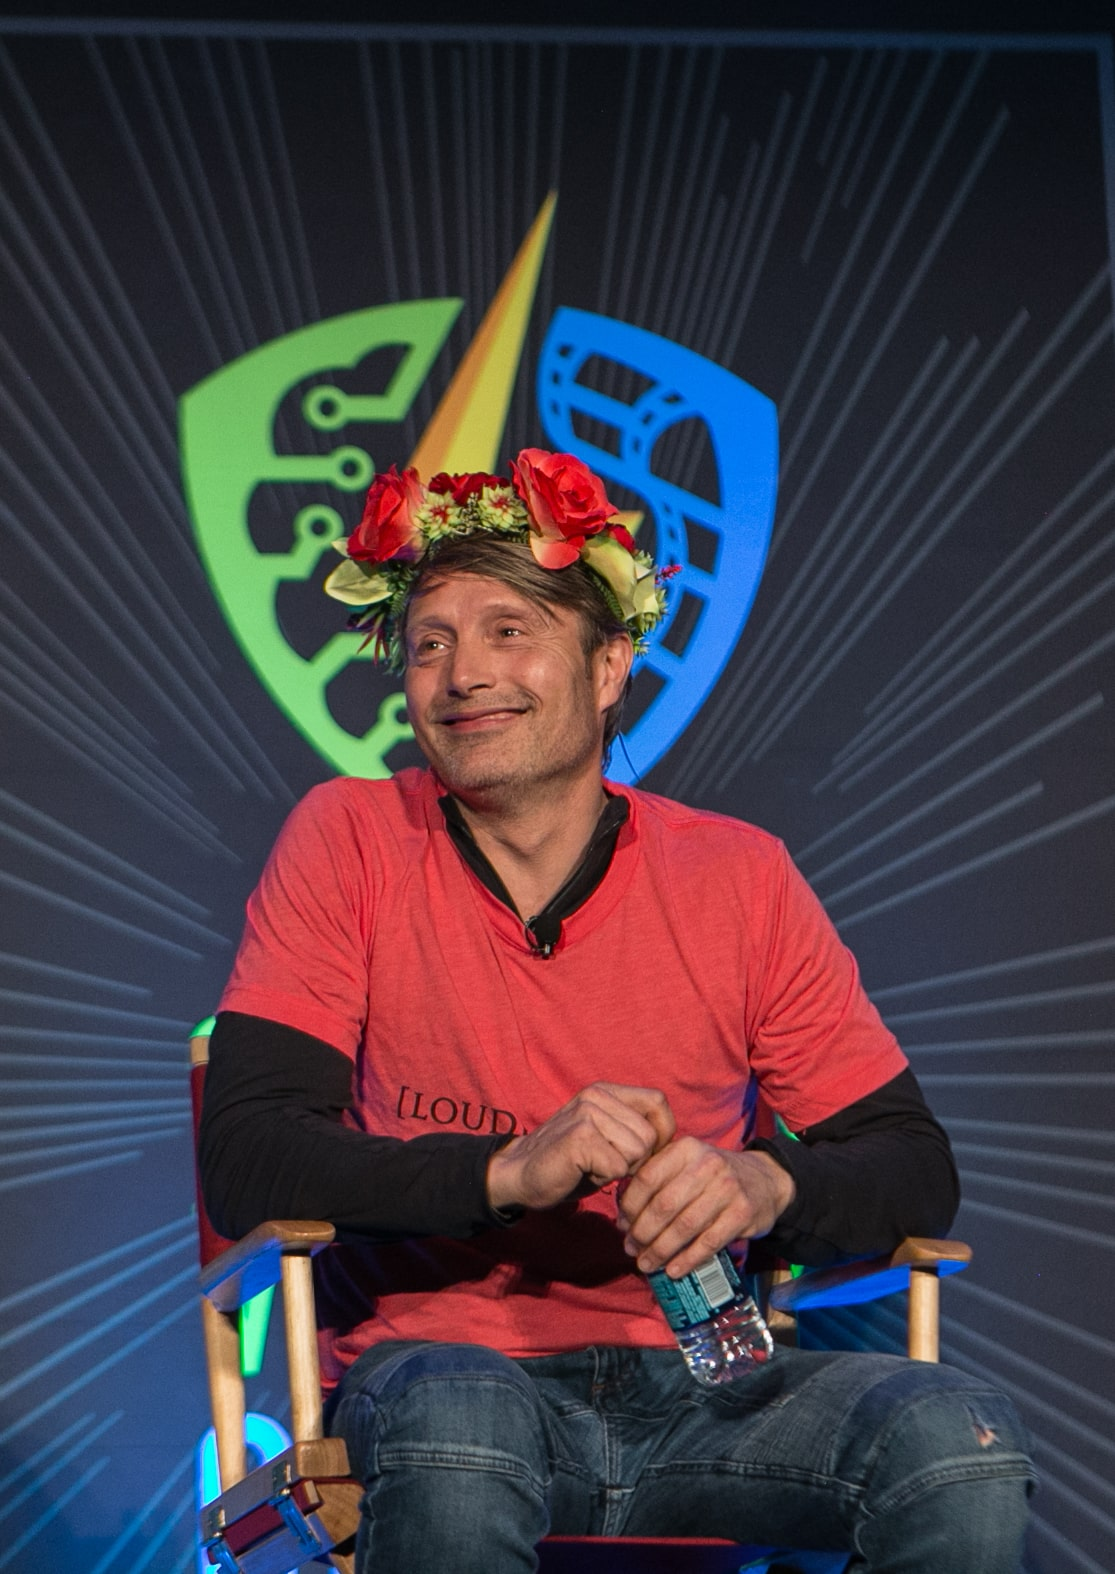 Mads mikkelsen wore a fannibal flower crown at silicon valley comic con izmirmasajfo